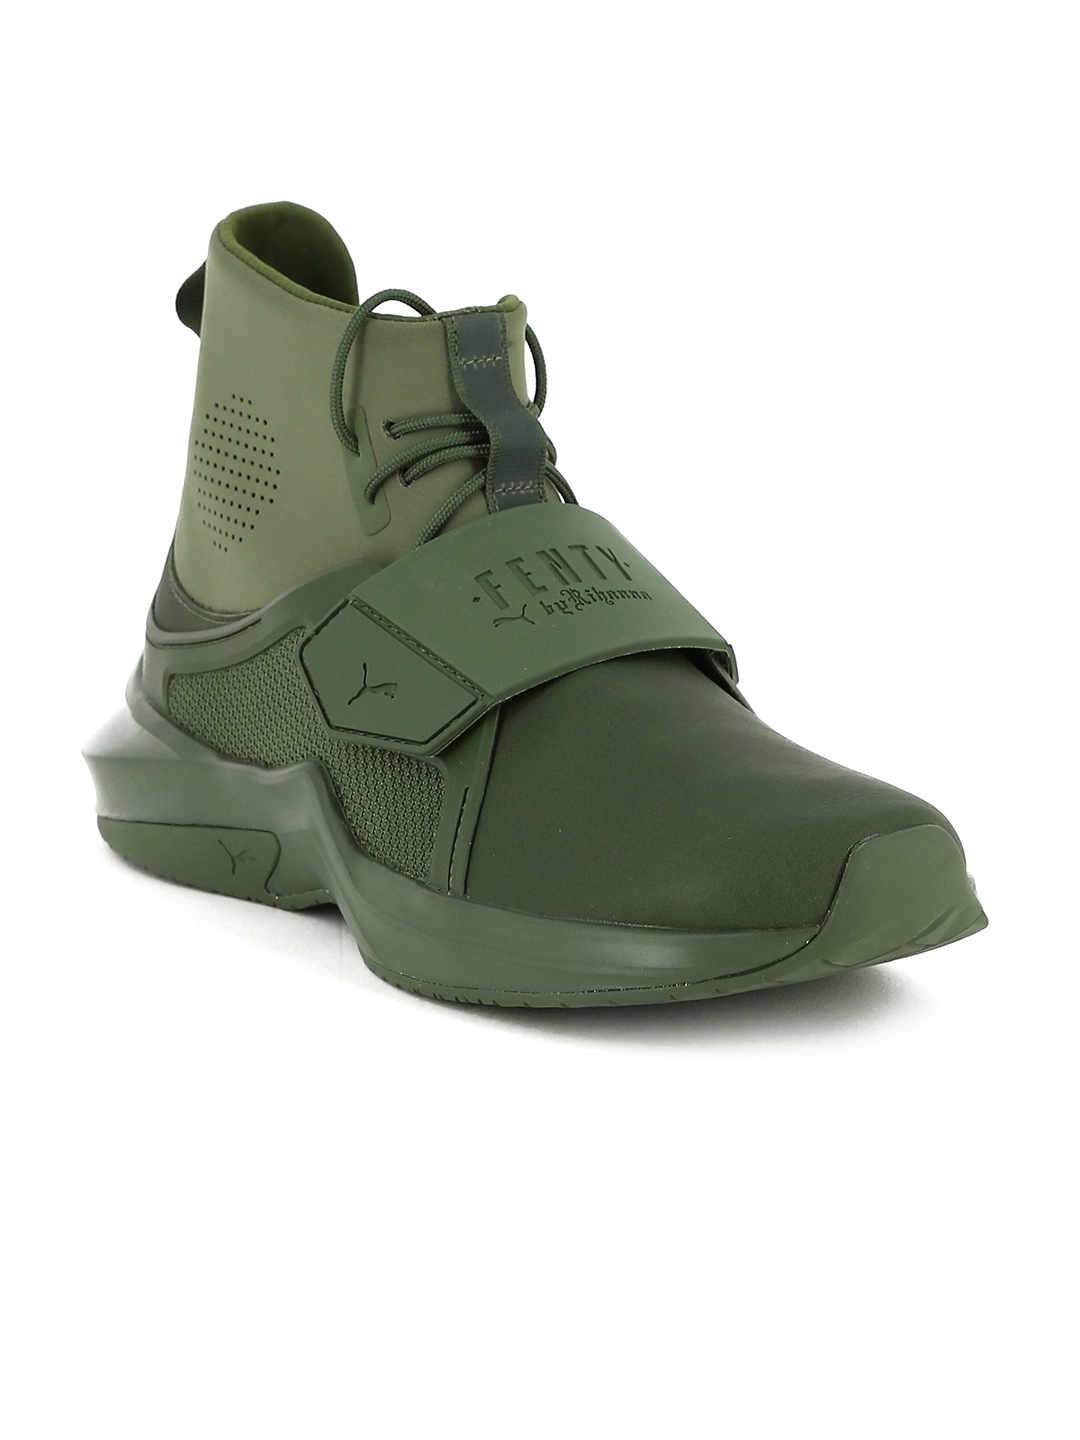 Buy Puma Women Olive Green Solid Leather High Top Sneakers - Casual ... b98bacfd3